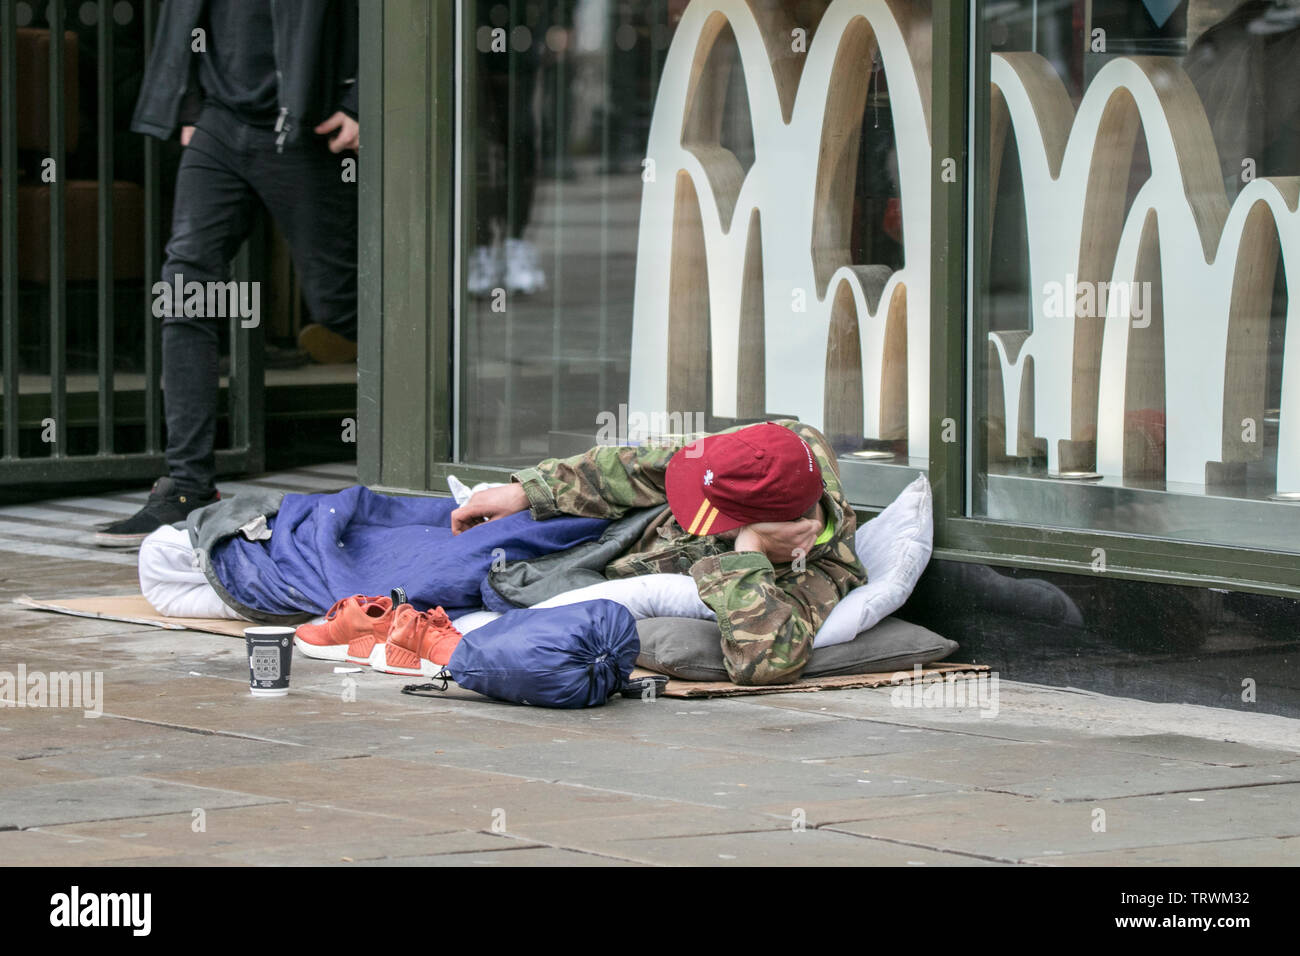 A homeless person sat on the cold streets of Manchester city centre, UK - Stock Image